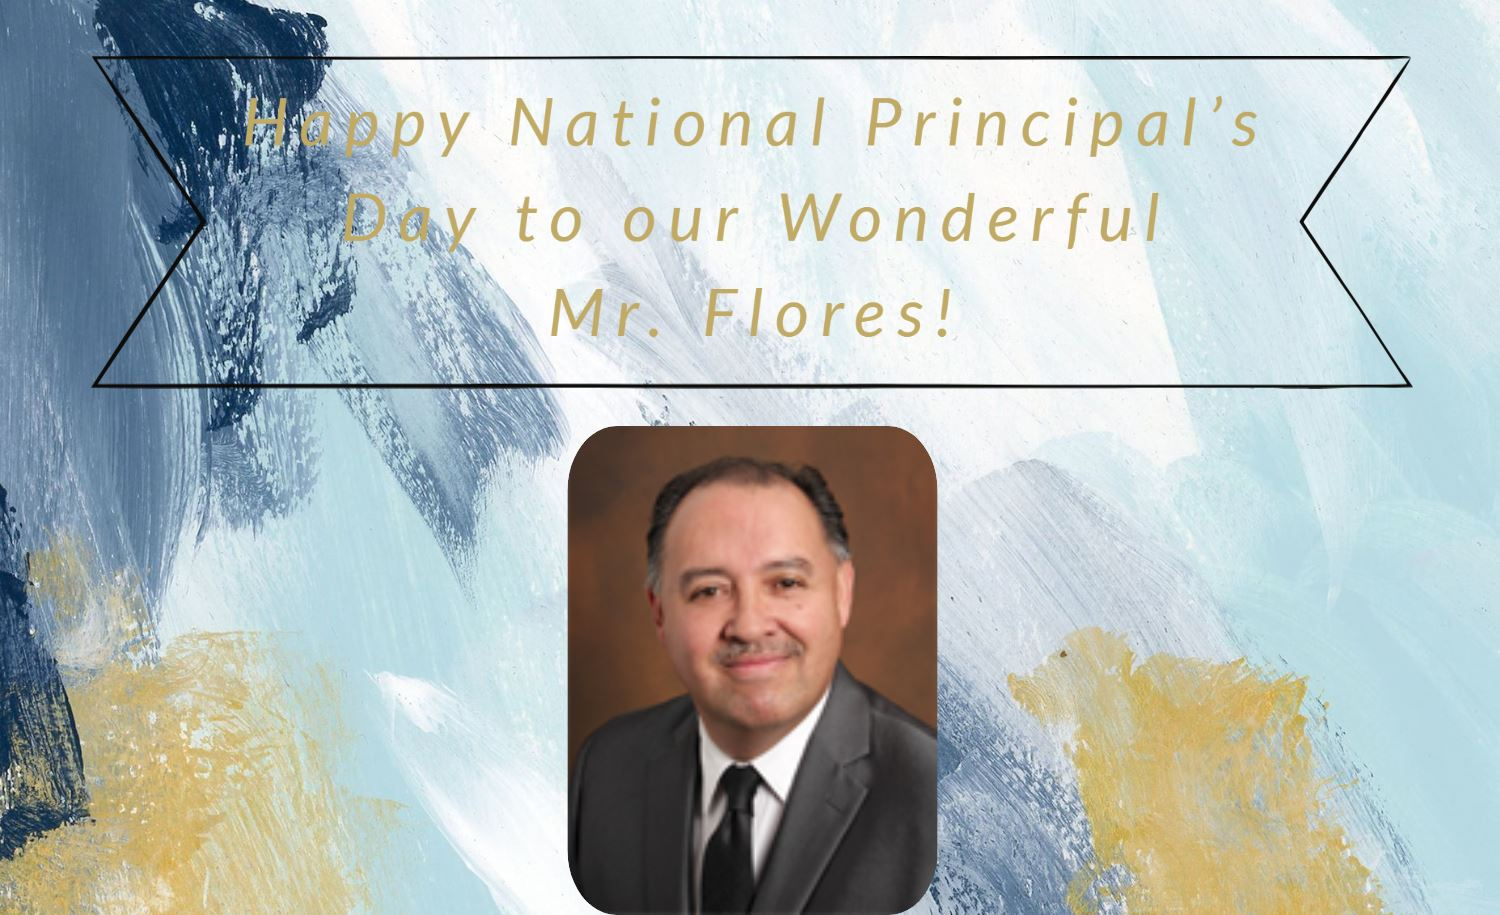 Happy National Principal's Day!